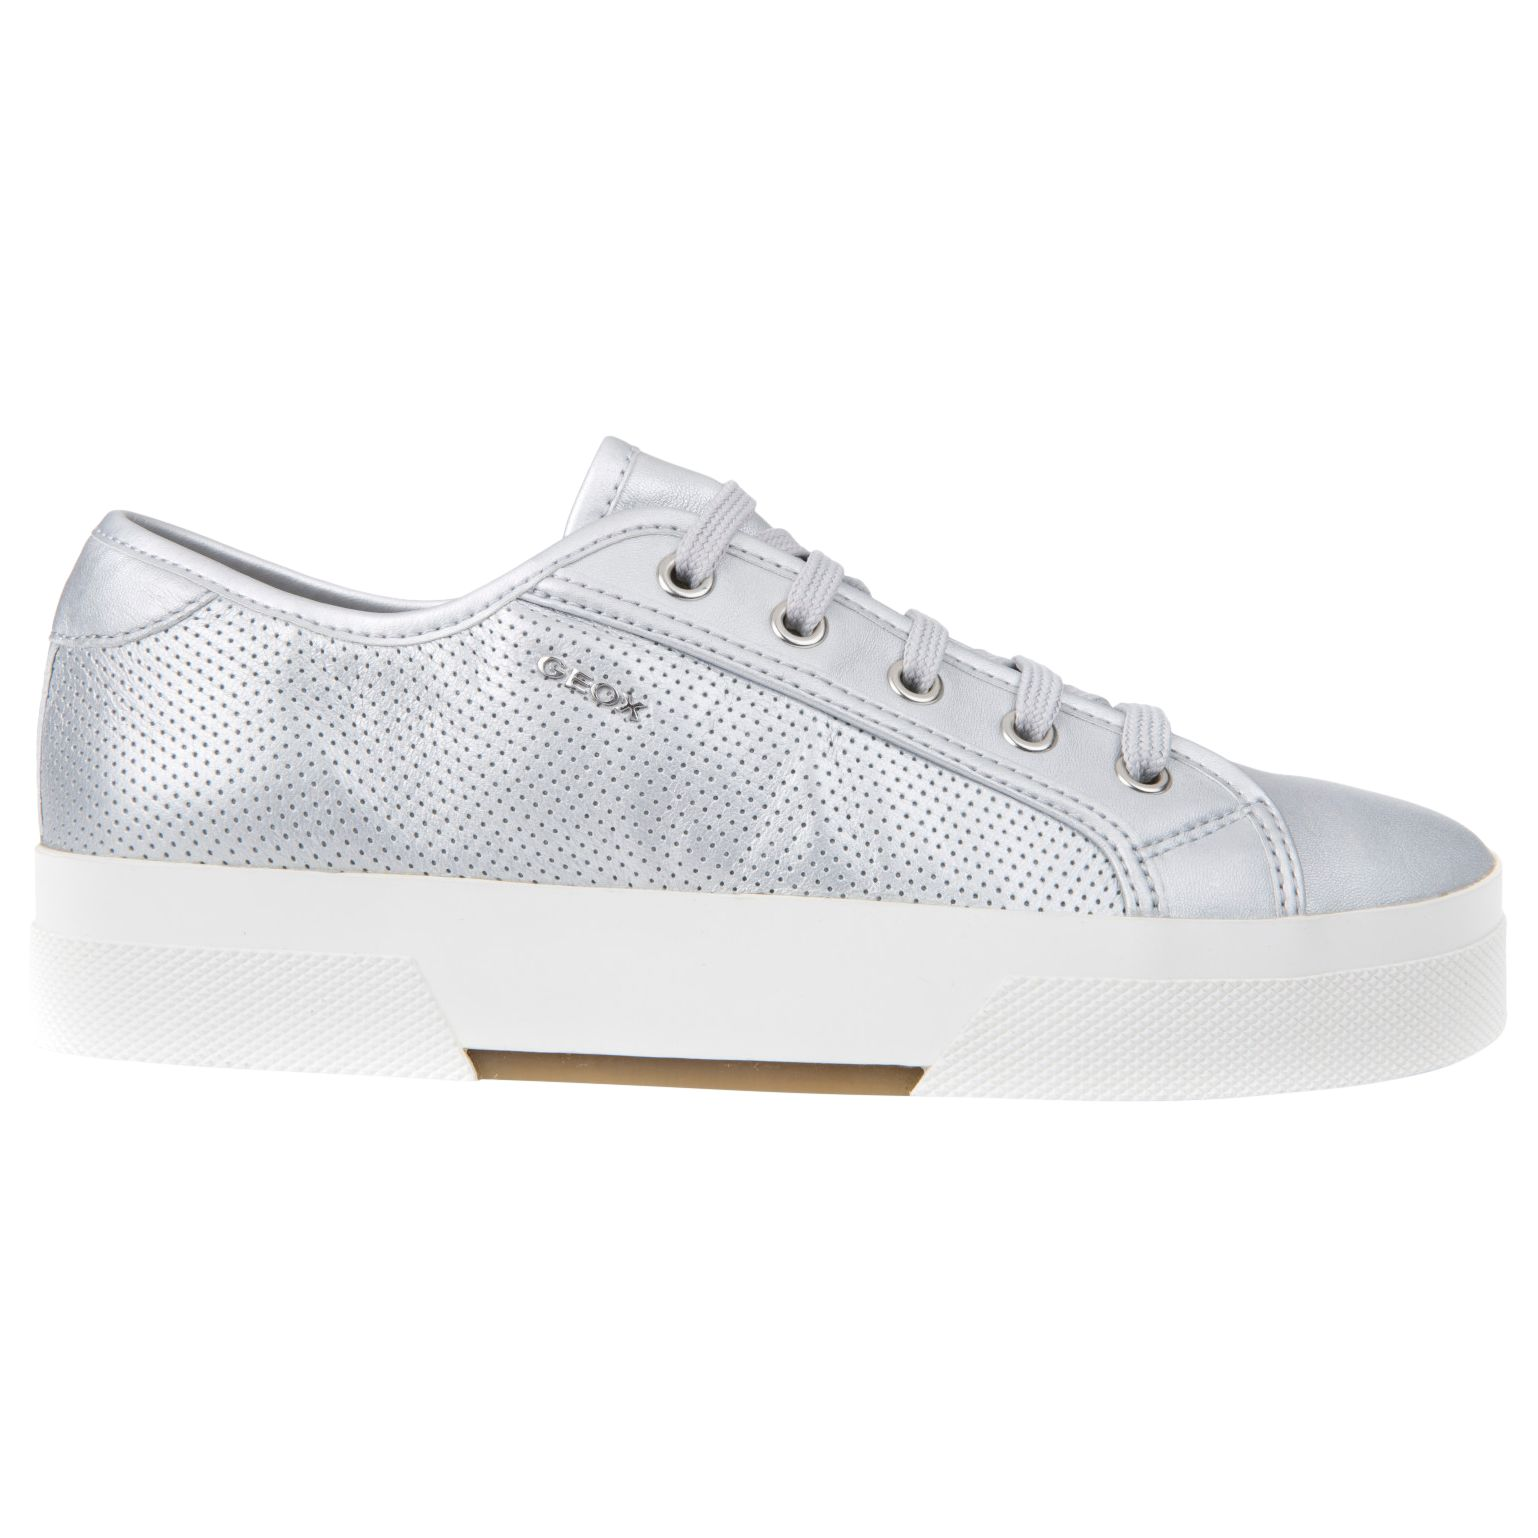 Geox Geox Hidence Lace Up Flatform Trainers